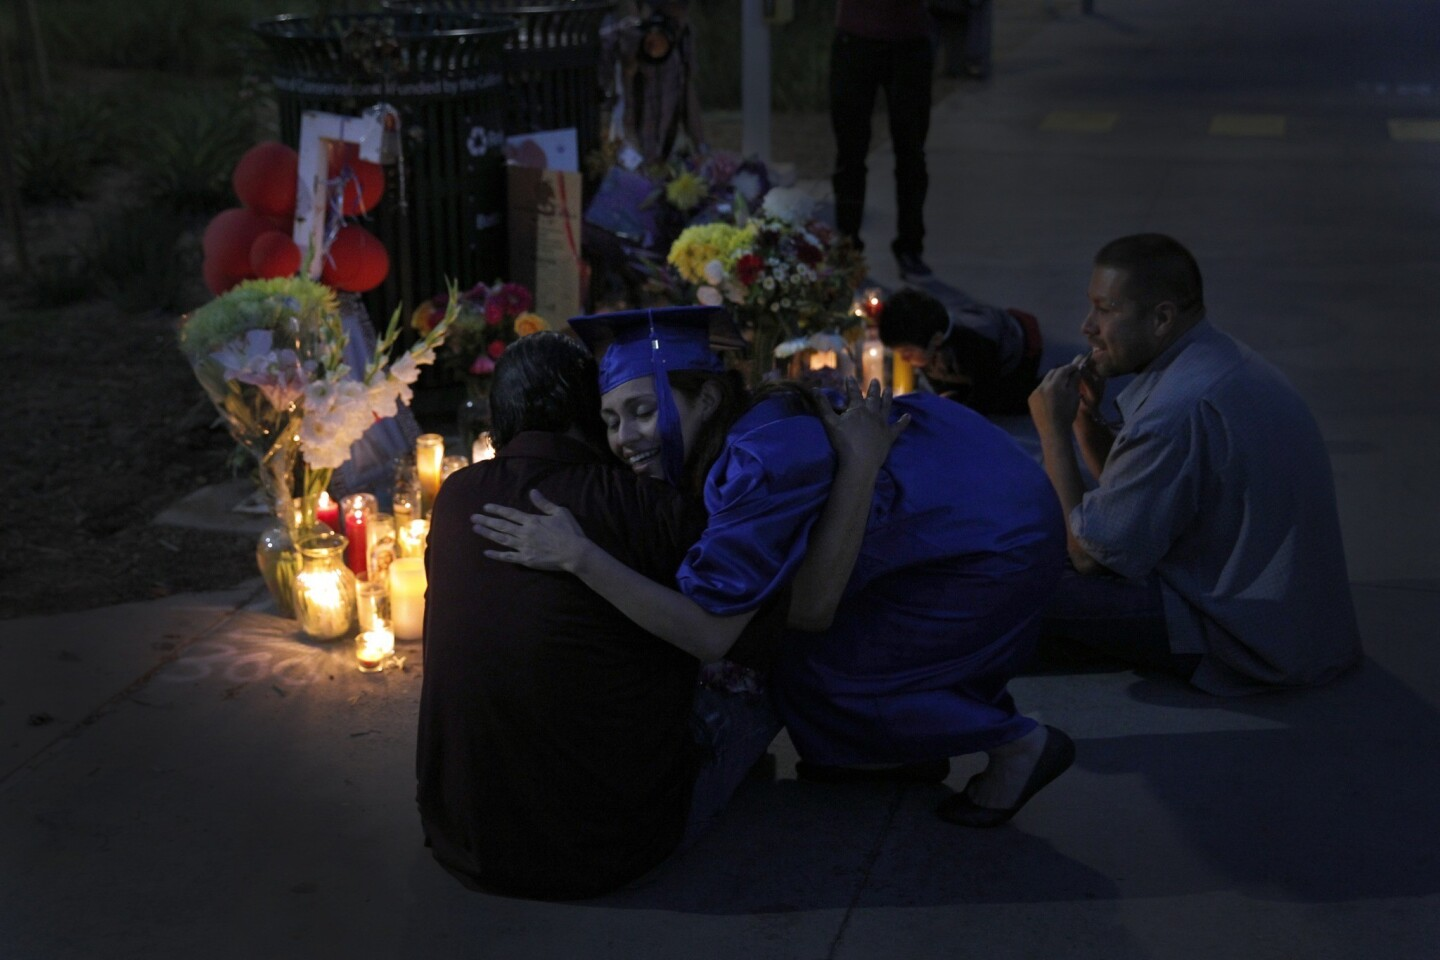 Patty Medina, who graduated from Santa Monica College on Tuesday, comforts Rafael Torres, left, and Gabriel Torres, sons of Margarita Gomez, who was gunned down near the campus library Friday. The fatal shootings have altered the crime picture in Santa Monica.